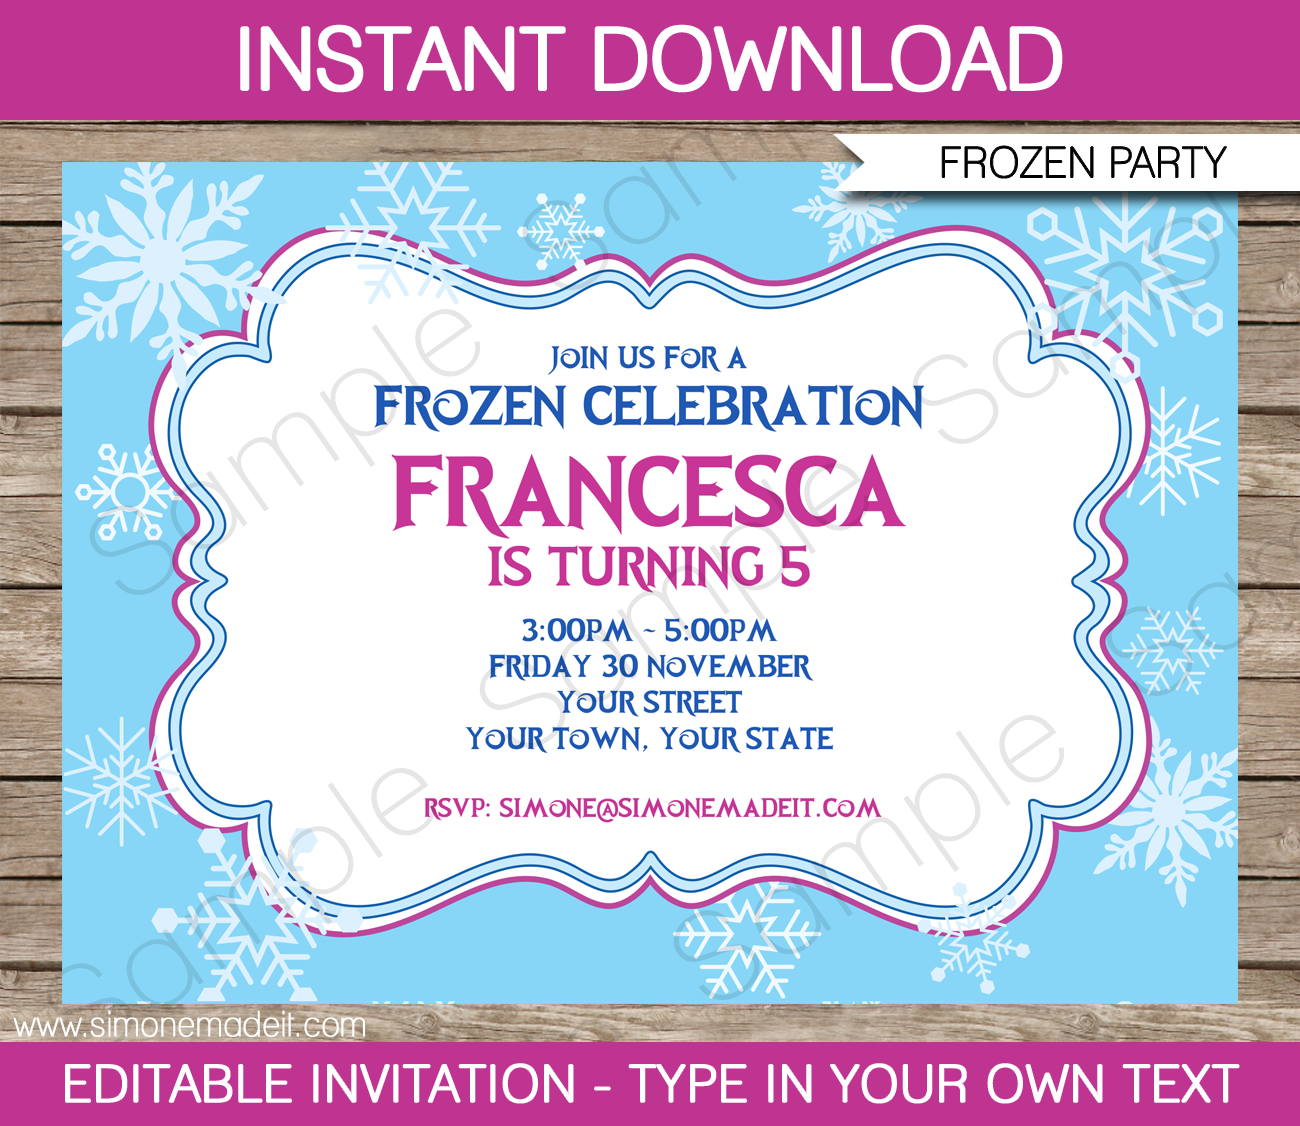 Frozen invitation template diy editable frozen invitations frozen invitation template birthday party editable diy theme template instant download 750 via maxwellsz